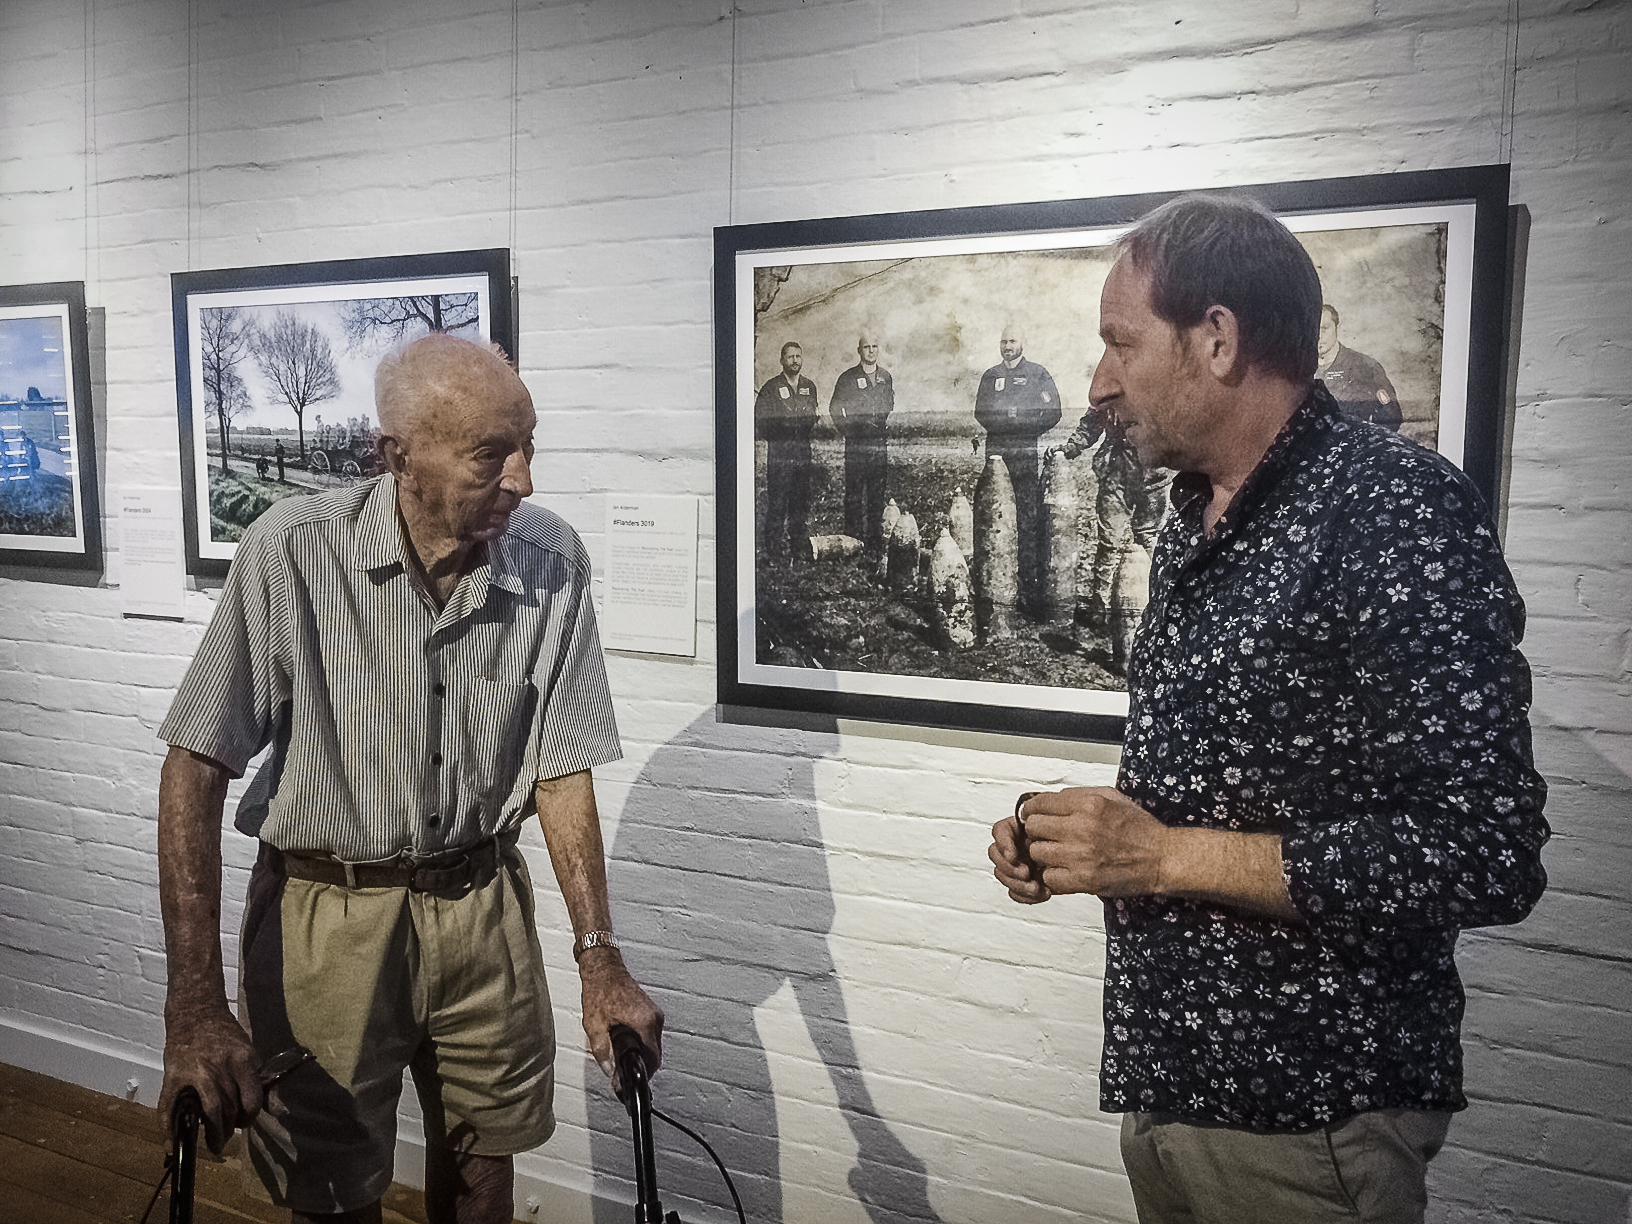 The 98 year old (and fantastic) Wilfred Bott. His father and five uncles all fought at Passchendaele, all 6 men returned home to Australia unscathed. With the exhibition itself filmed on the Passchendaele battlefield, I was very pleased to have Wilfred visit and tell me about his ancestors exploits in Flanders a century ago.